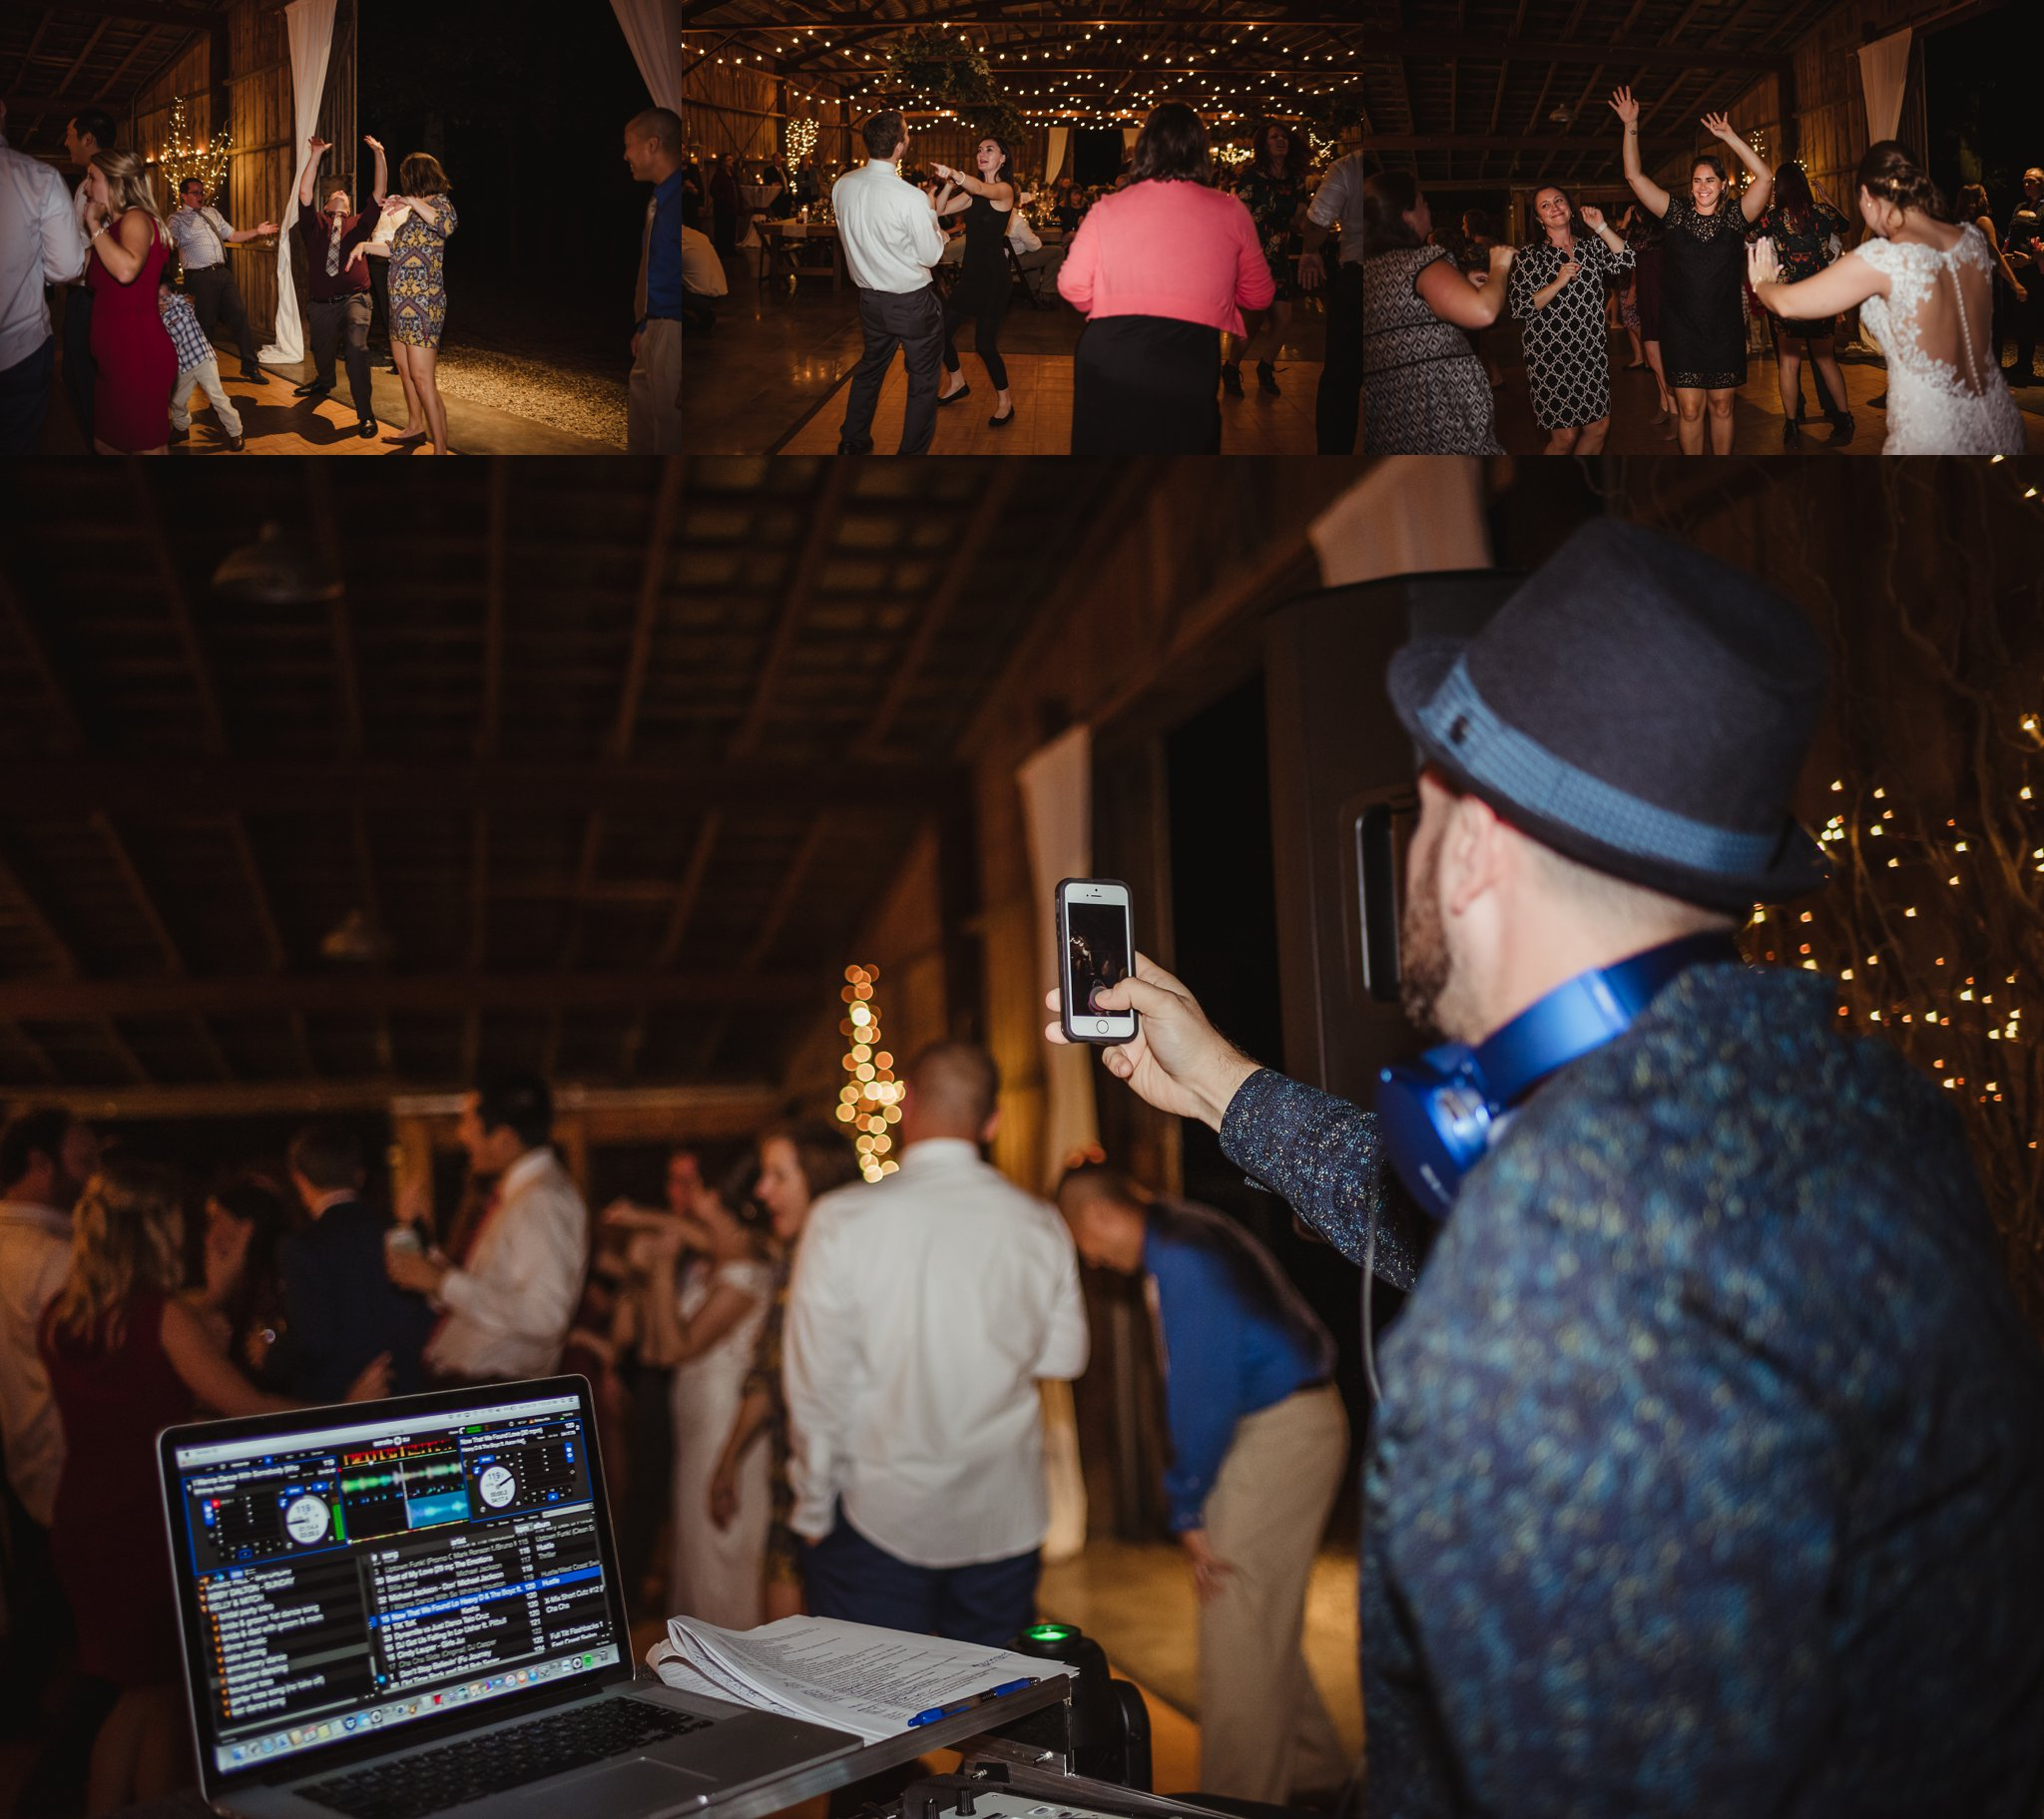 The guests enjoy dancing during the wedding reception at the Little Herb House in Raleigh, North Carolina. Photos by Rose Trail Images.